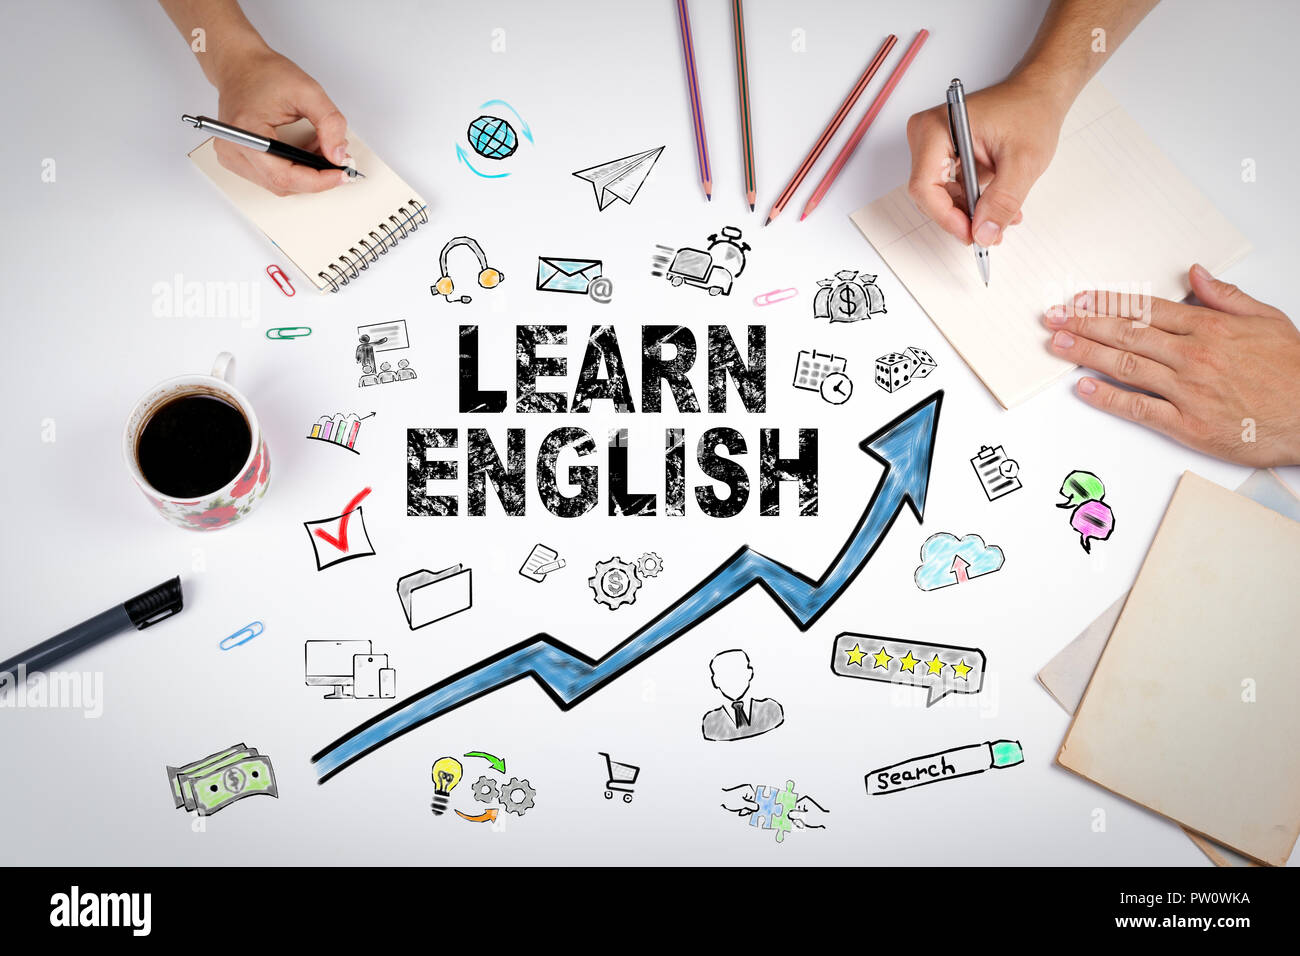 Learn English Concept. Education and career opportunities - Stock Image